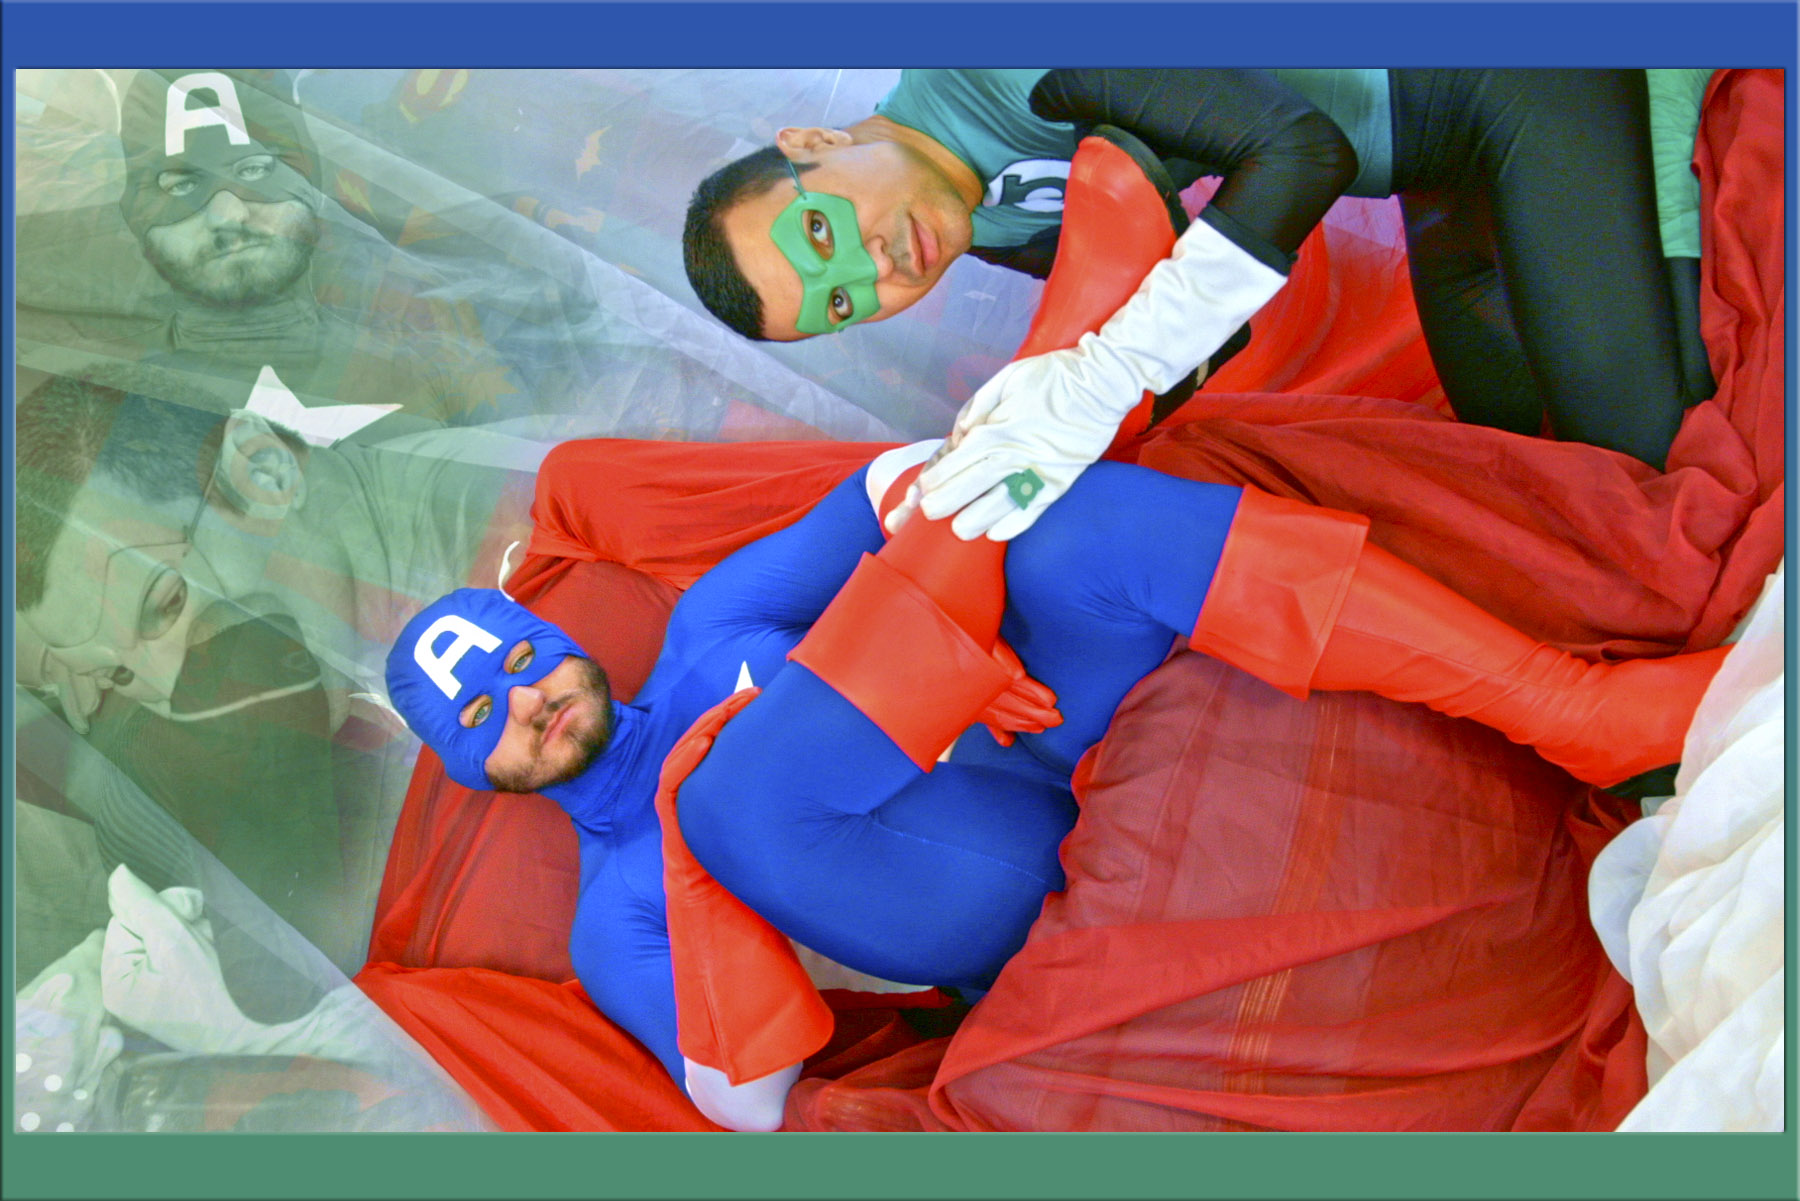 MF - EP NO.32 - CAPTAIN AMERICA & GREEN LANTERN PARODY